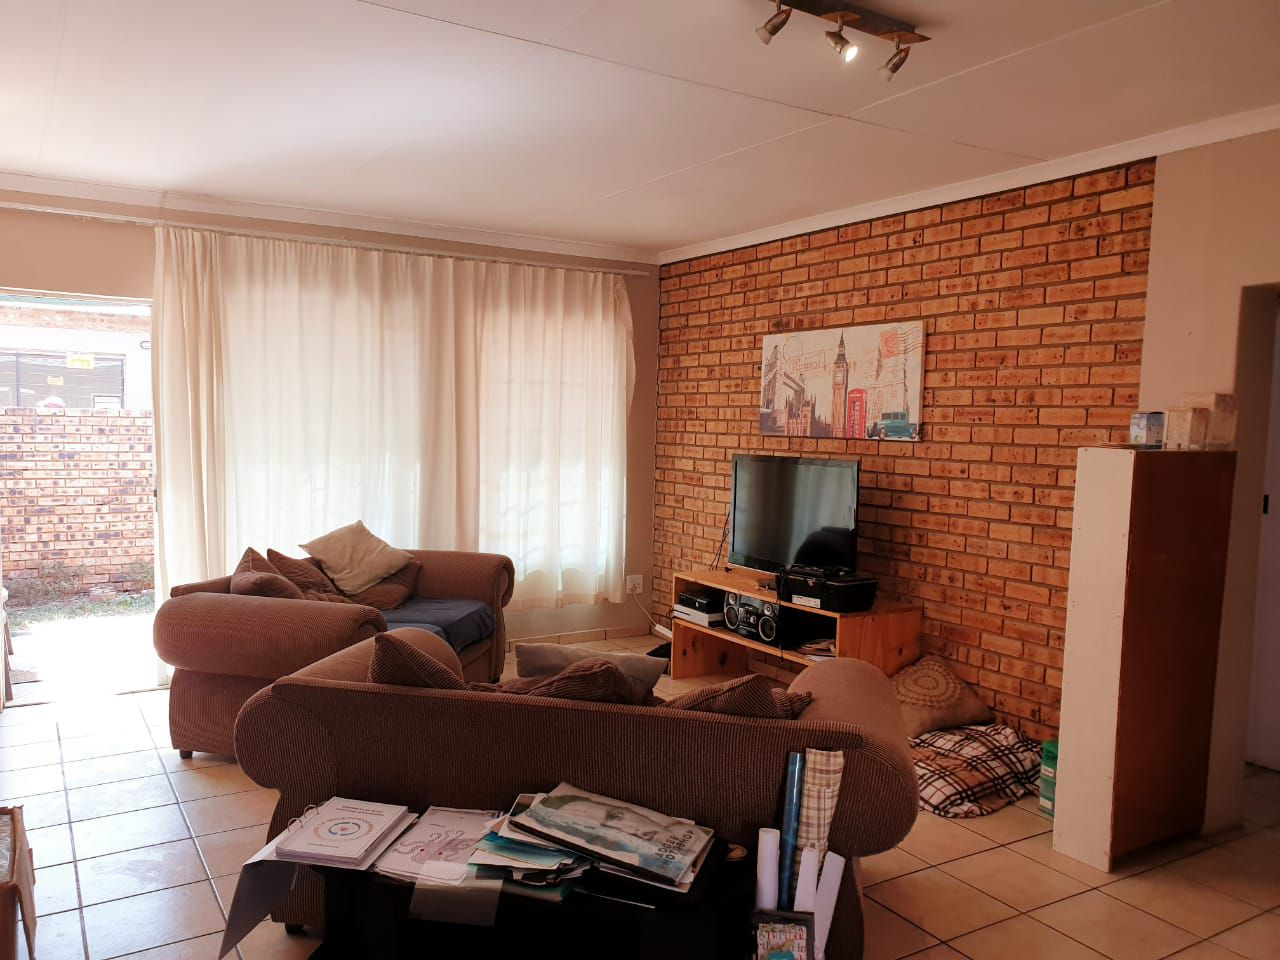 House in Bult - WhatsApp Image 2019-08-26 at 15.11.30 (2).jpeg